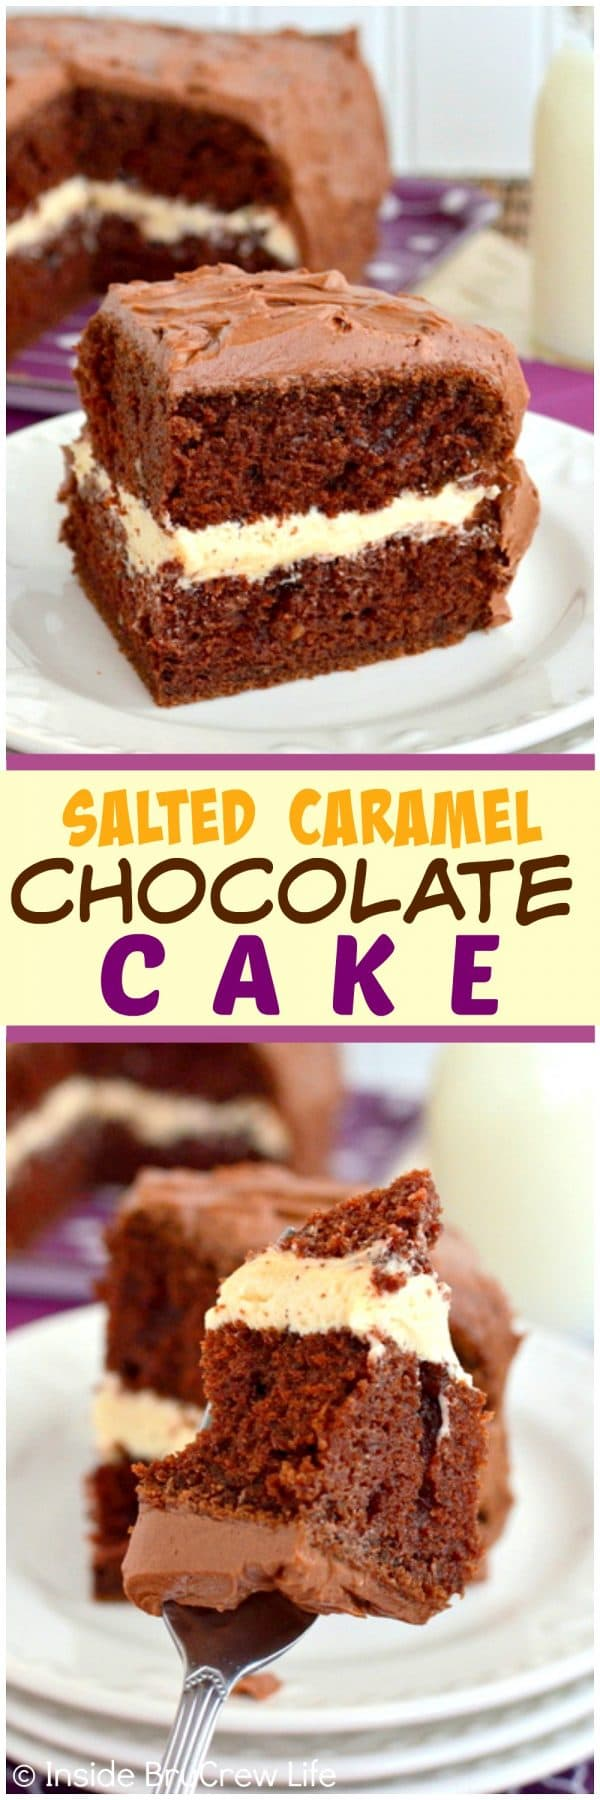 Salted Caramel Chocolate Cake - two kinds of frosting and layers of homemade cake make this cake recipe great for any party!